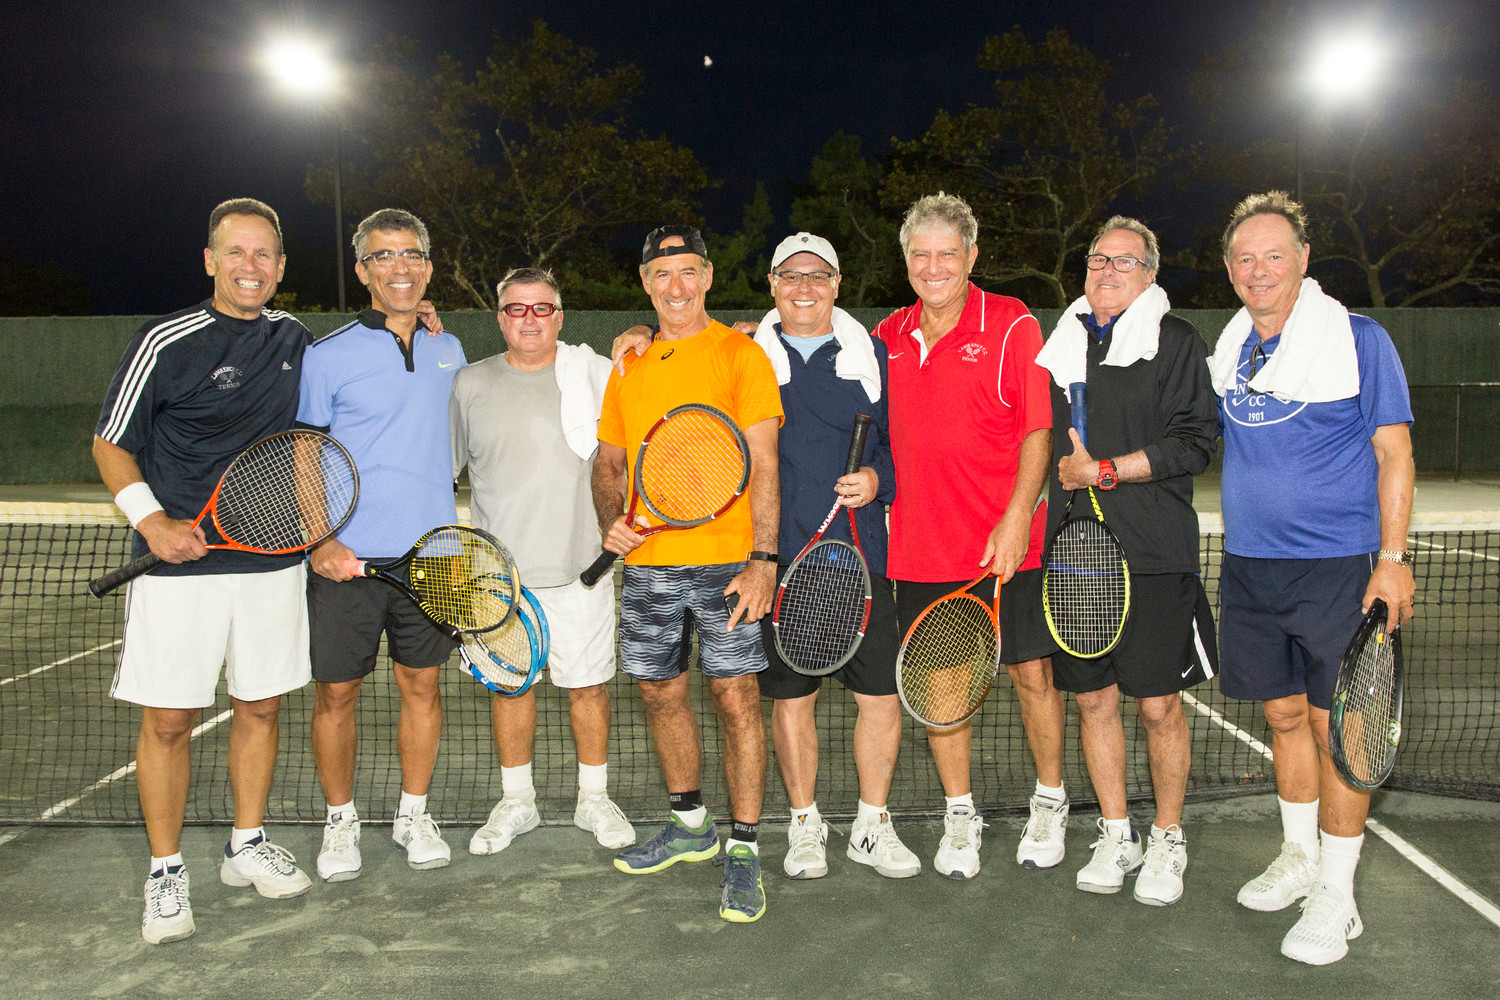 Lawrence senior men's tennis won its league title. From left were Alan Smagler, Gary Adler, Paul Wilson, Ron Jackson, Bobby Tehel, captain Barry Straus, Gary Post and Stu Schor.